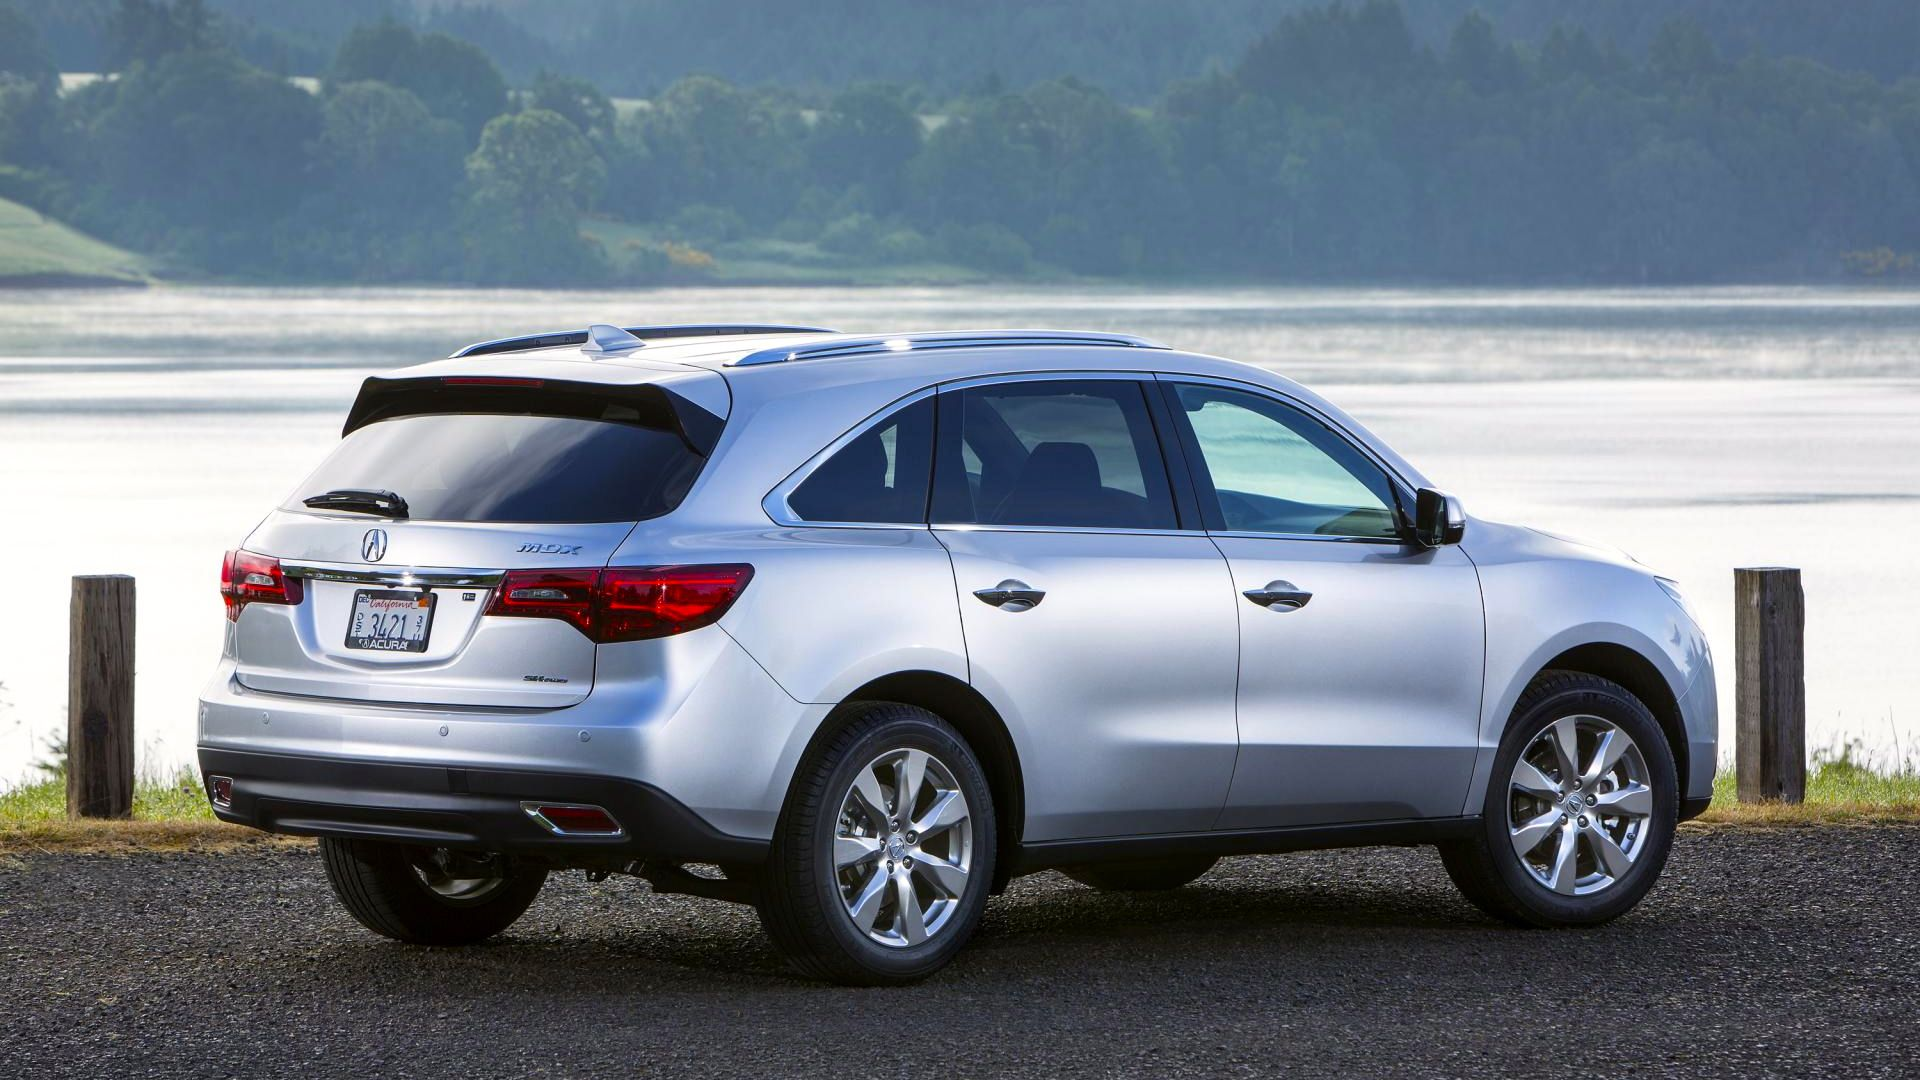 The 2014 Acura Mdx Acura Suv Acura Mdx Car Pictures